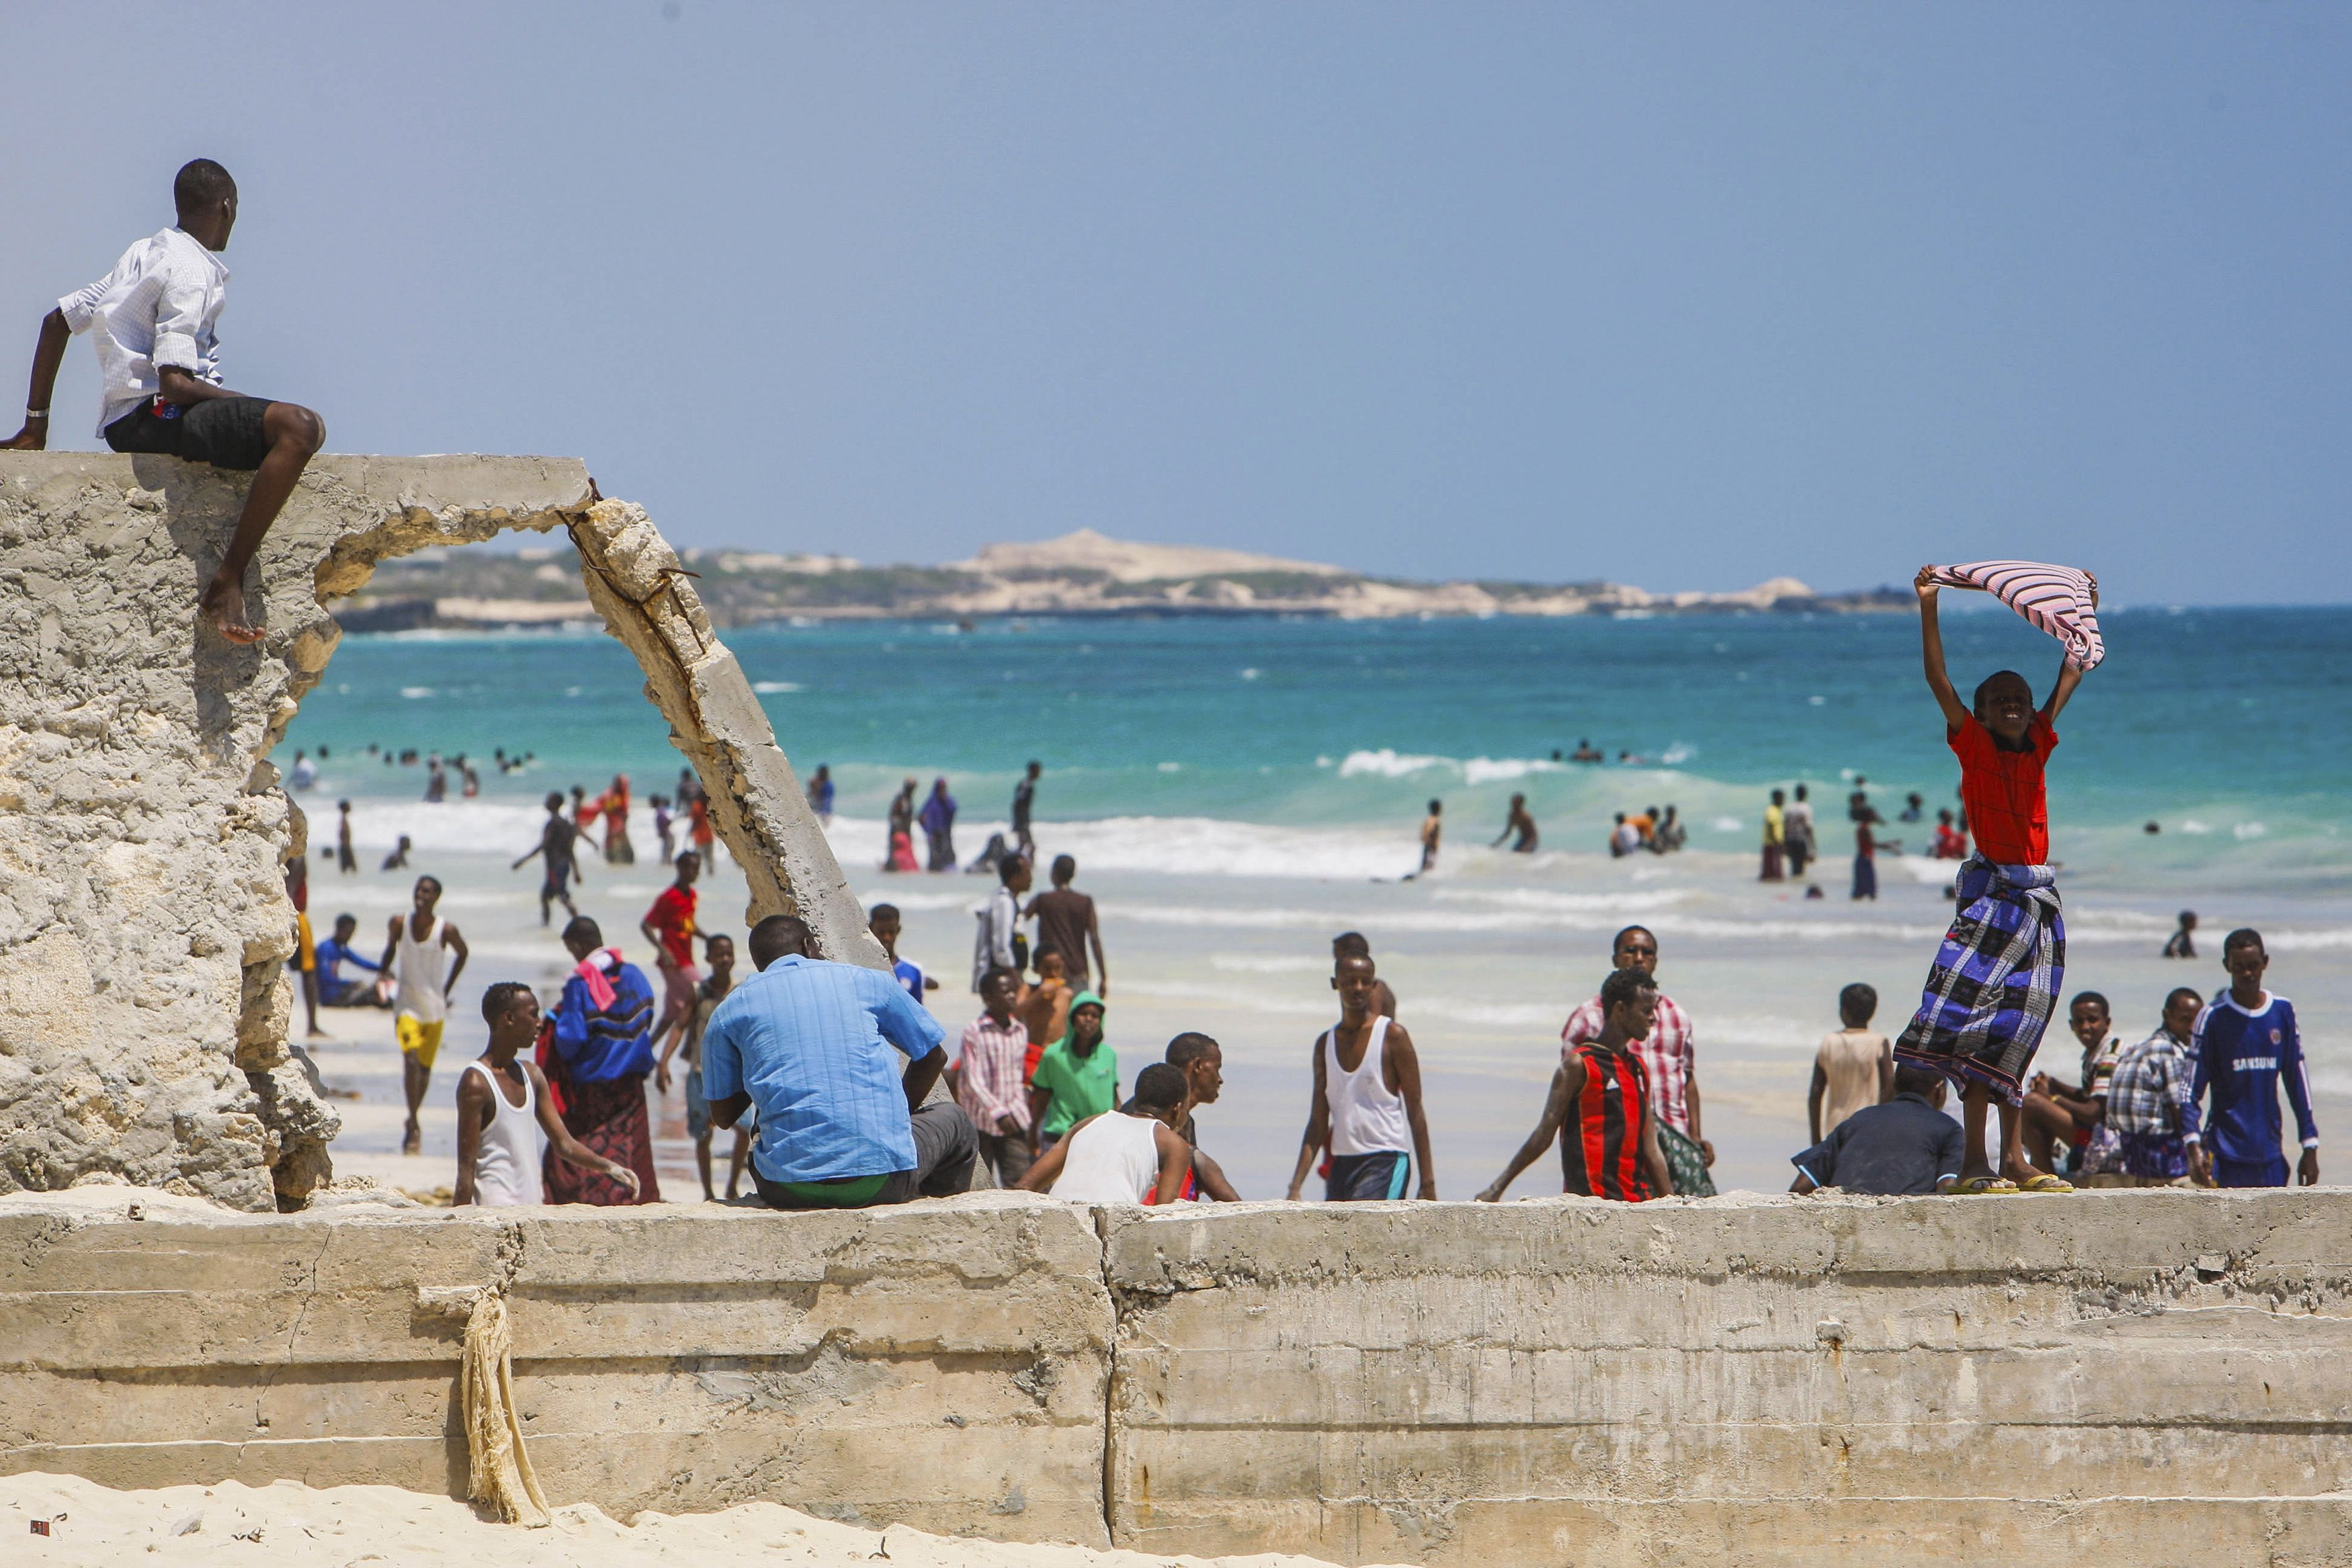 At more than 3300 kilometers Somalia boasts